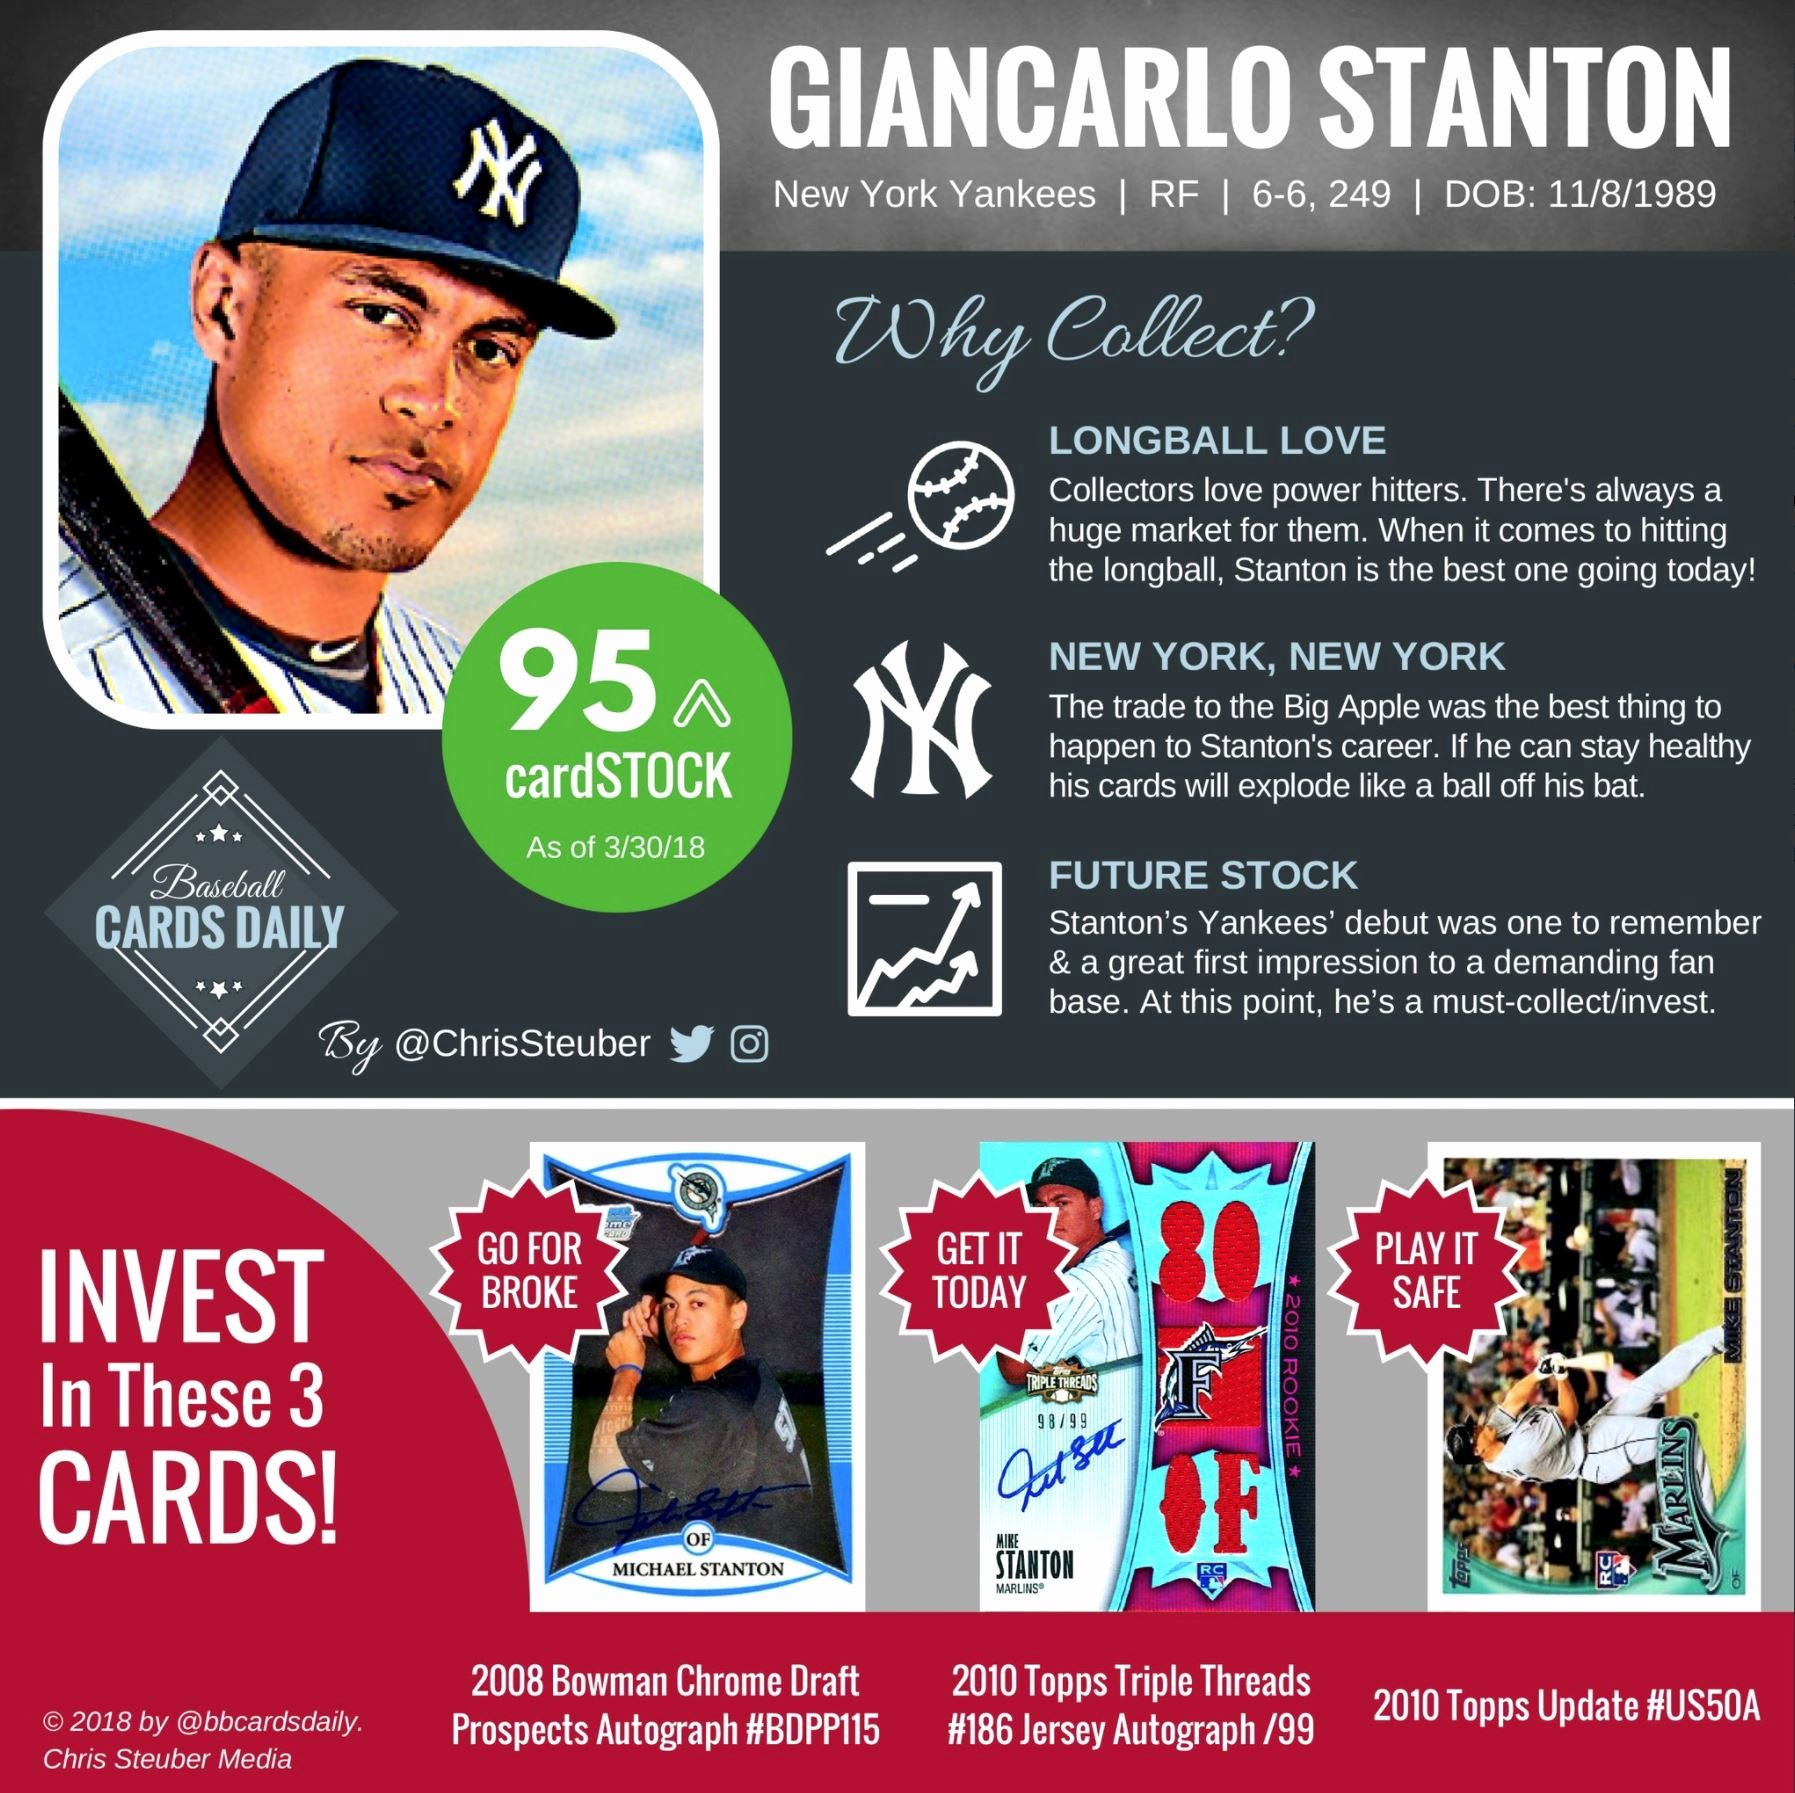 Baseball Card Size Template Best Of topps Update Checklist Template Samples Gold Chase Headley